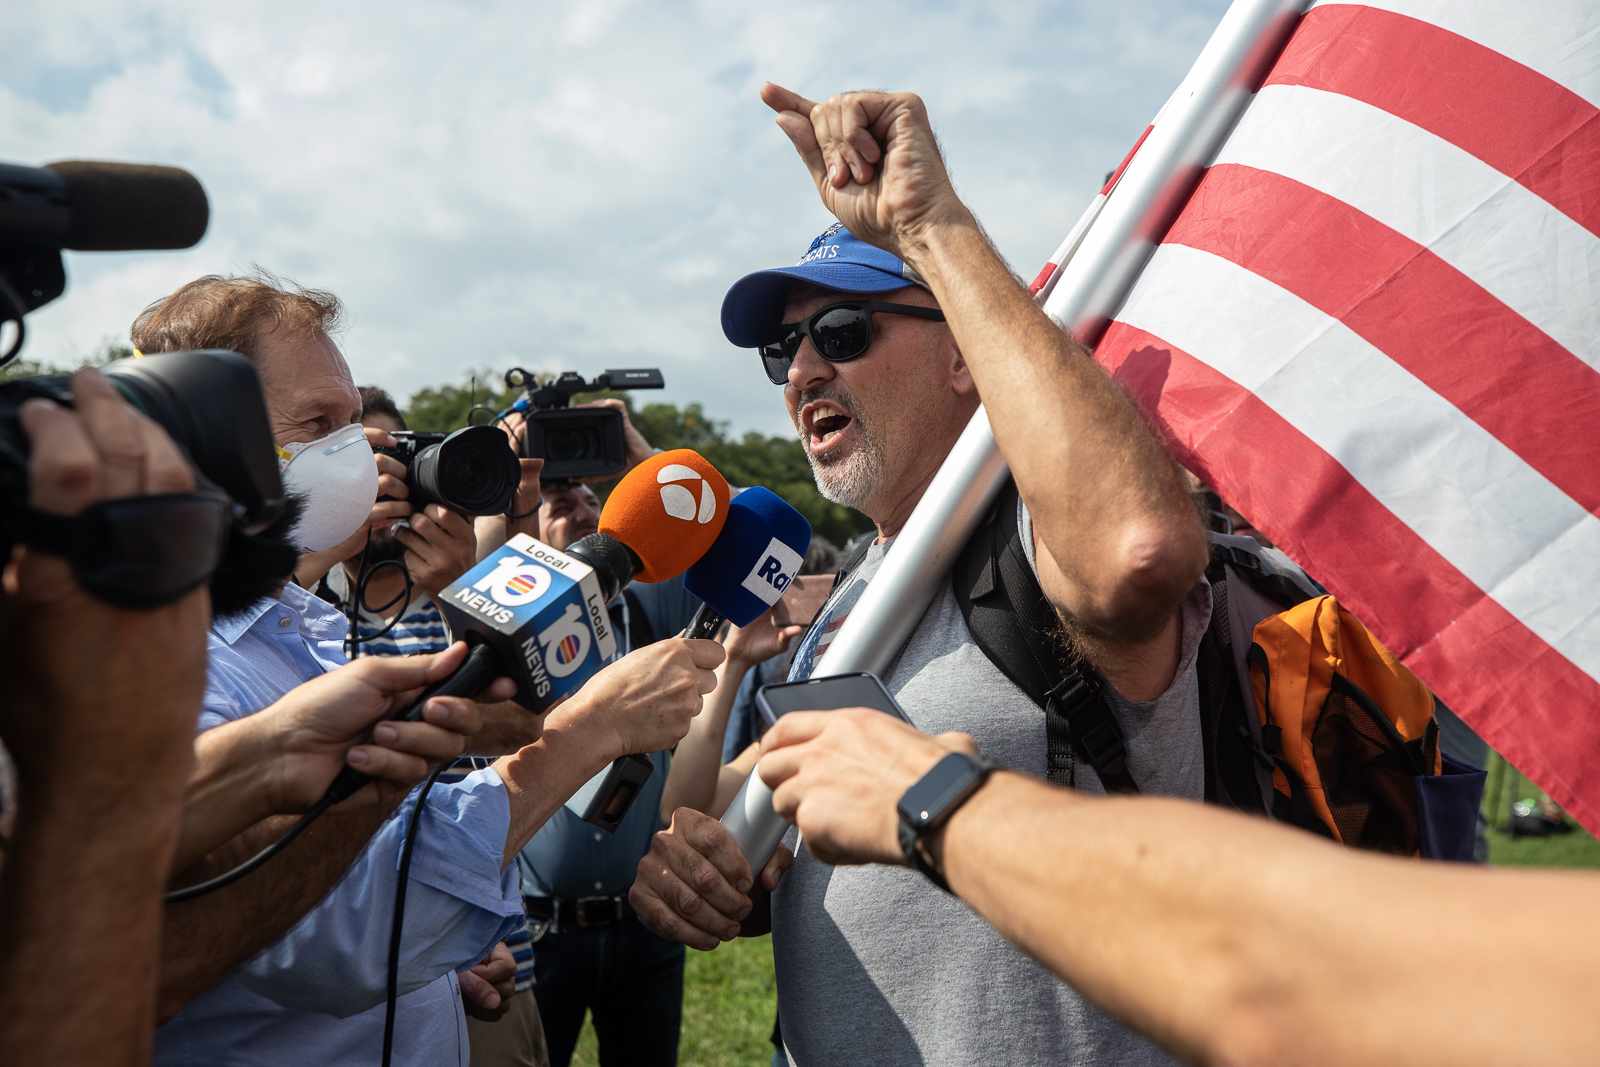 """""""Kentucky Phil"""" told several media outlets he thinks those who were jailed in connection with the Capitol Riot should have already gone to trial while attending the """"Justice for J6"""" rally in Washington, D.C. on September 18, 2021. (Kaylee Greenlee - Daily Caller News Foundation)"""